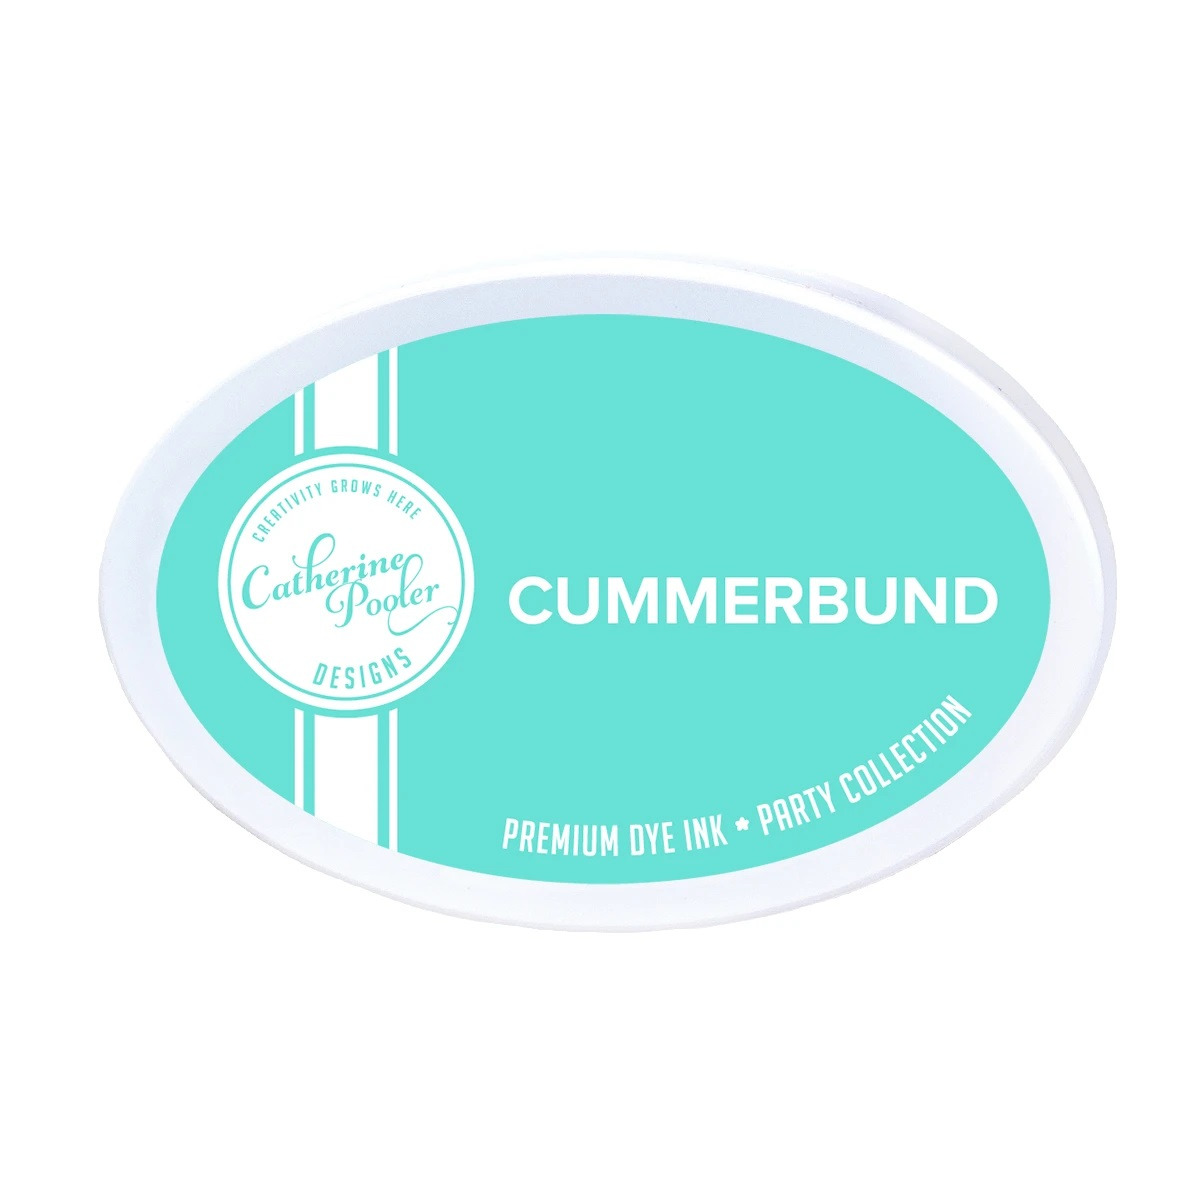 *NEW* - Catherine Pooler - Cummerbund - Ink Pad